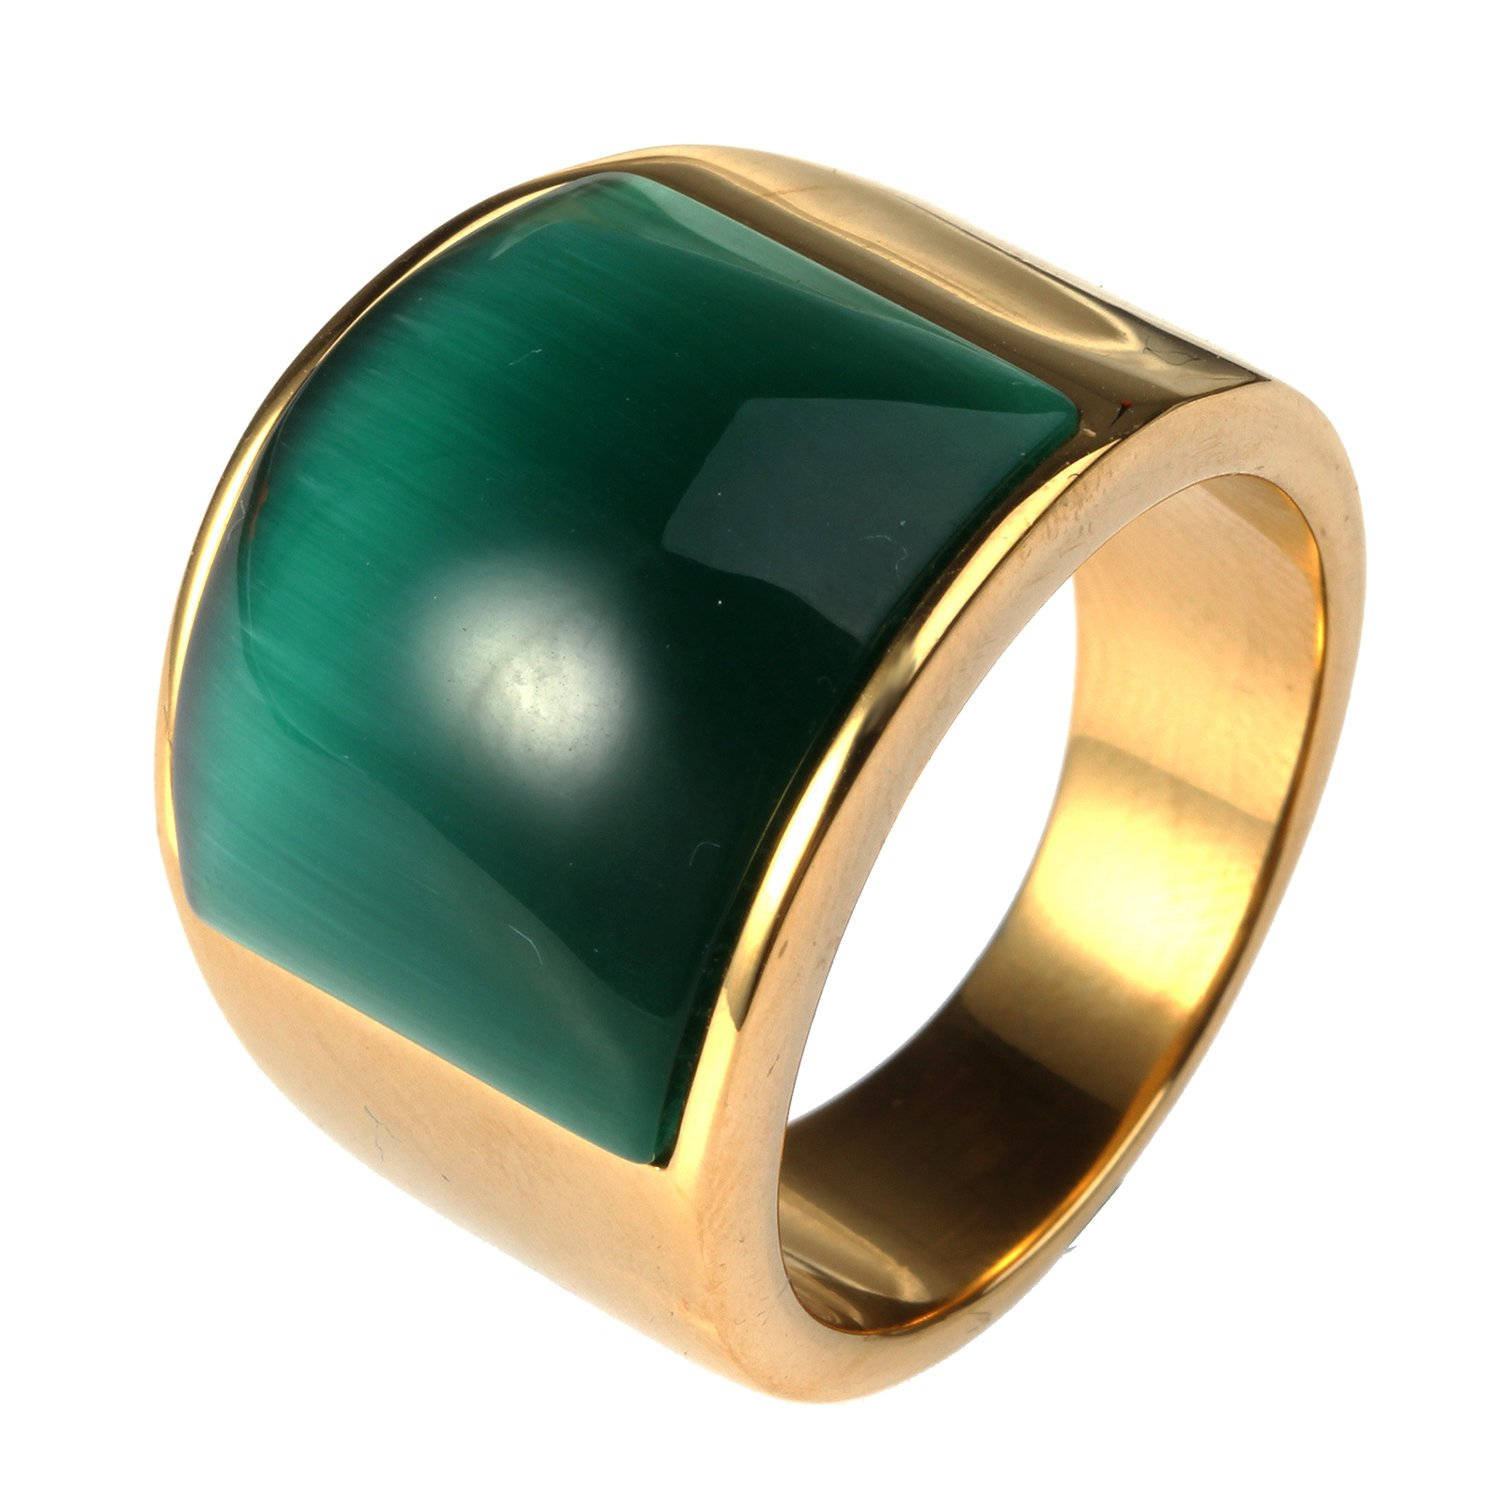 LILILEO Jewelry Stainless Steel Gold Plating Retro Big Green Cat's Eye Stone Ring For Unisex Rings